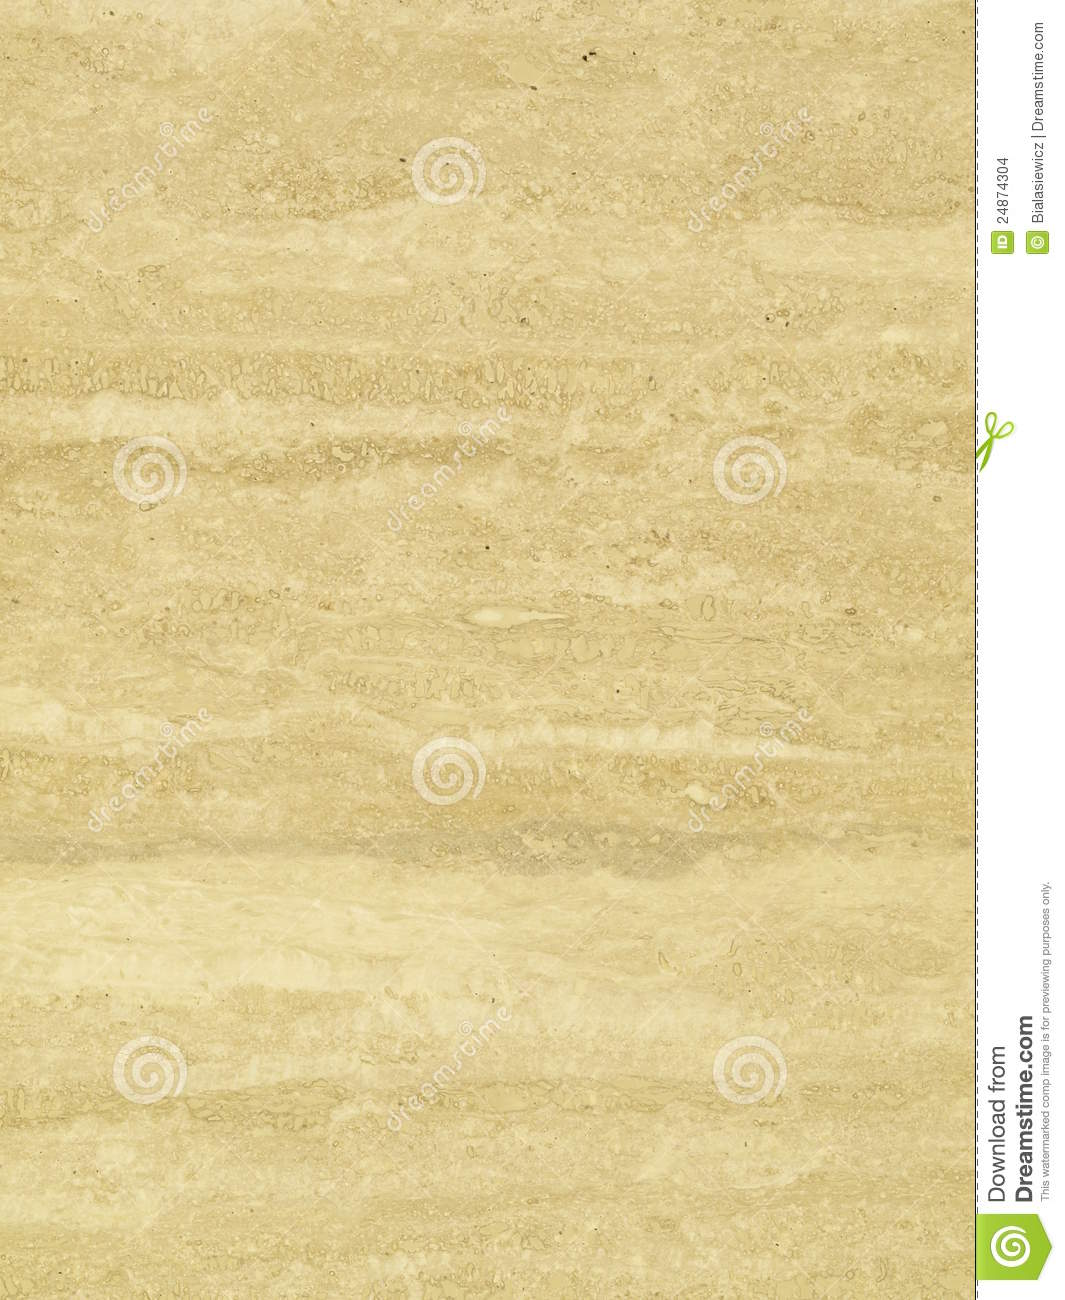 Travertine Texture Stock Images - Image: 24874304